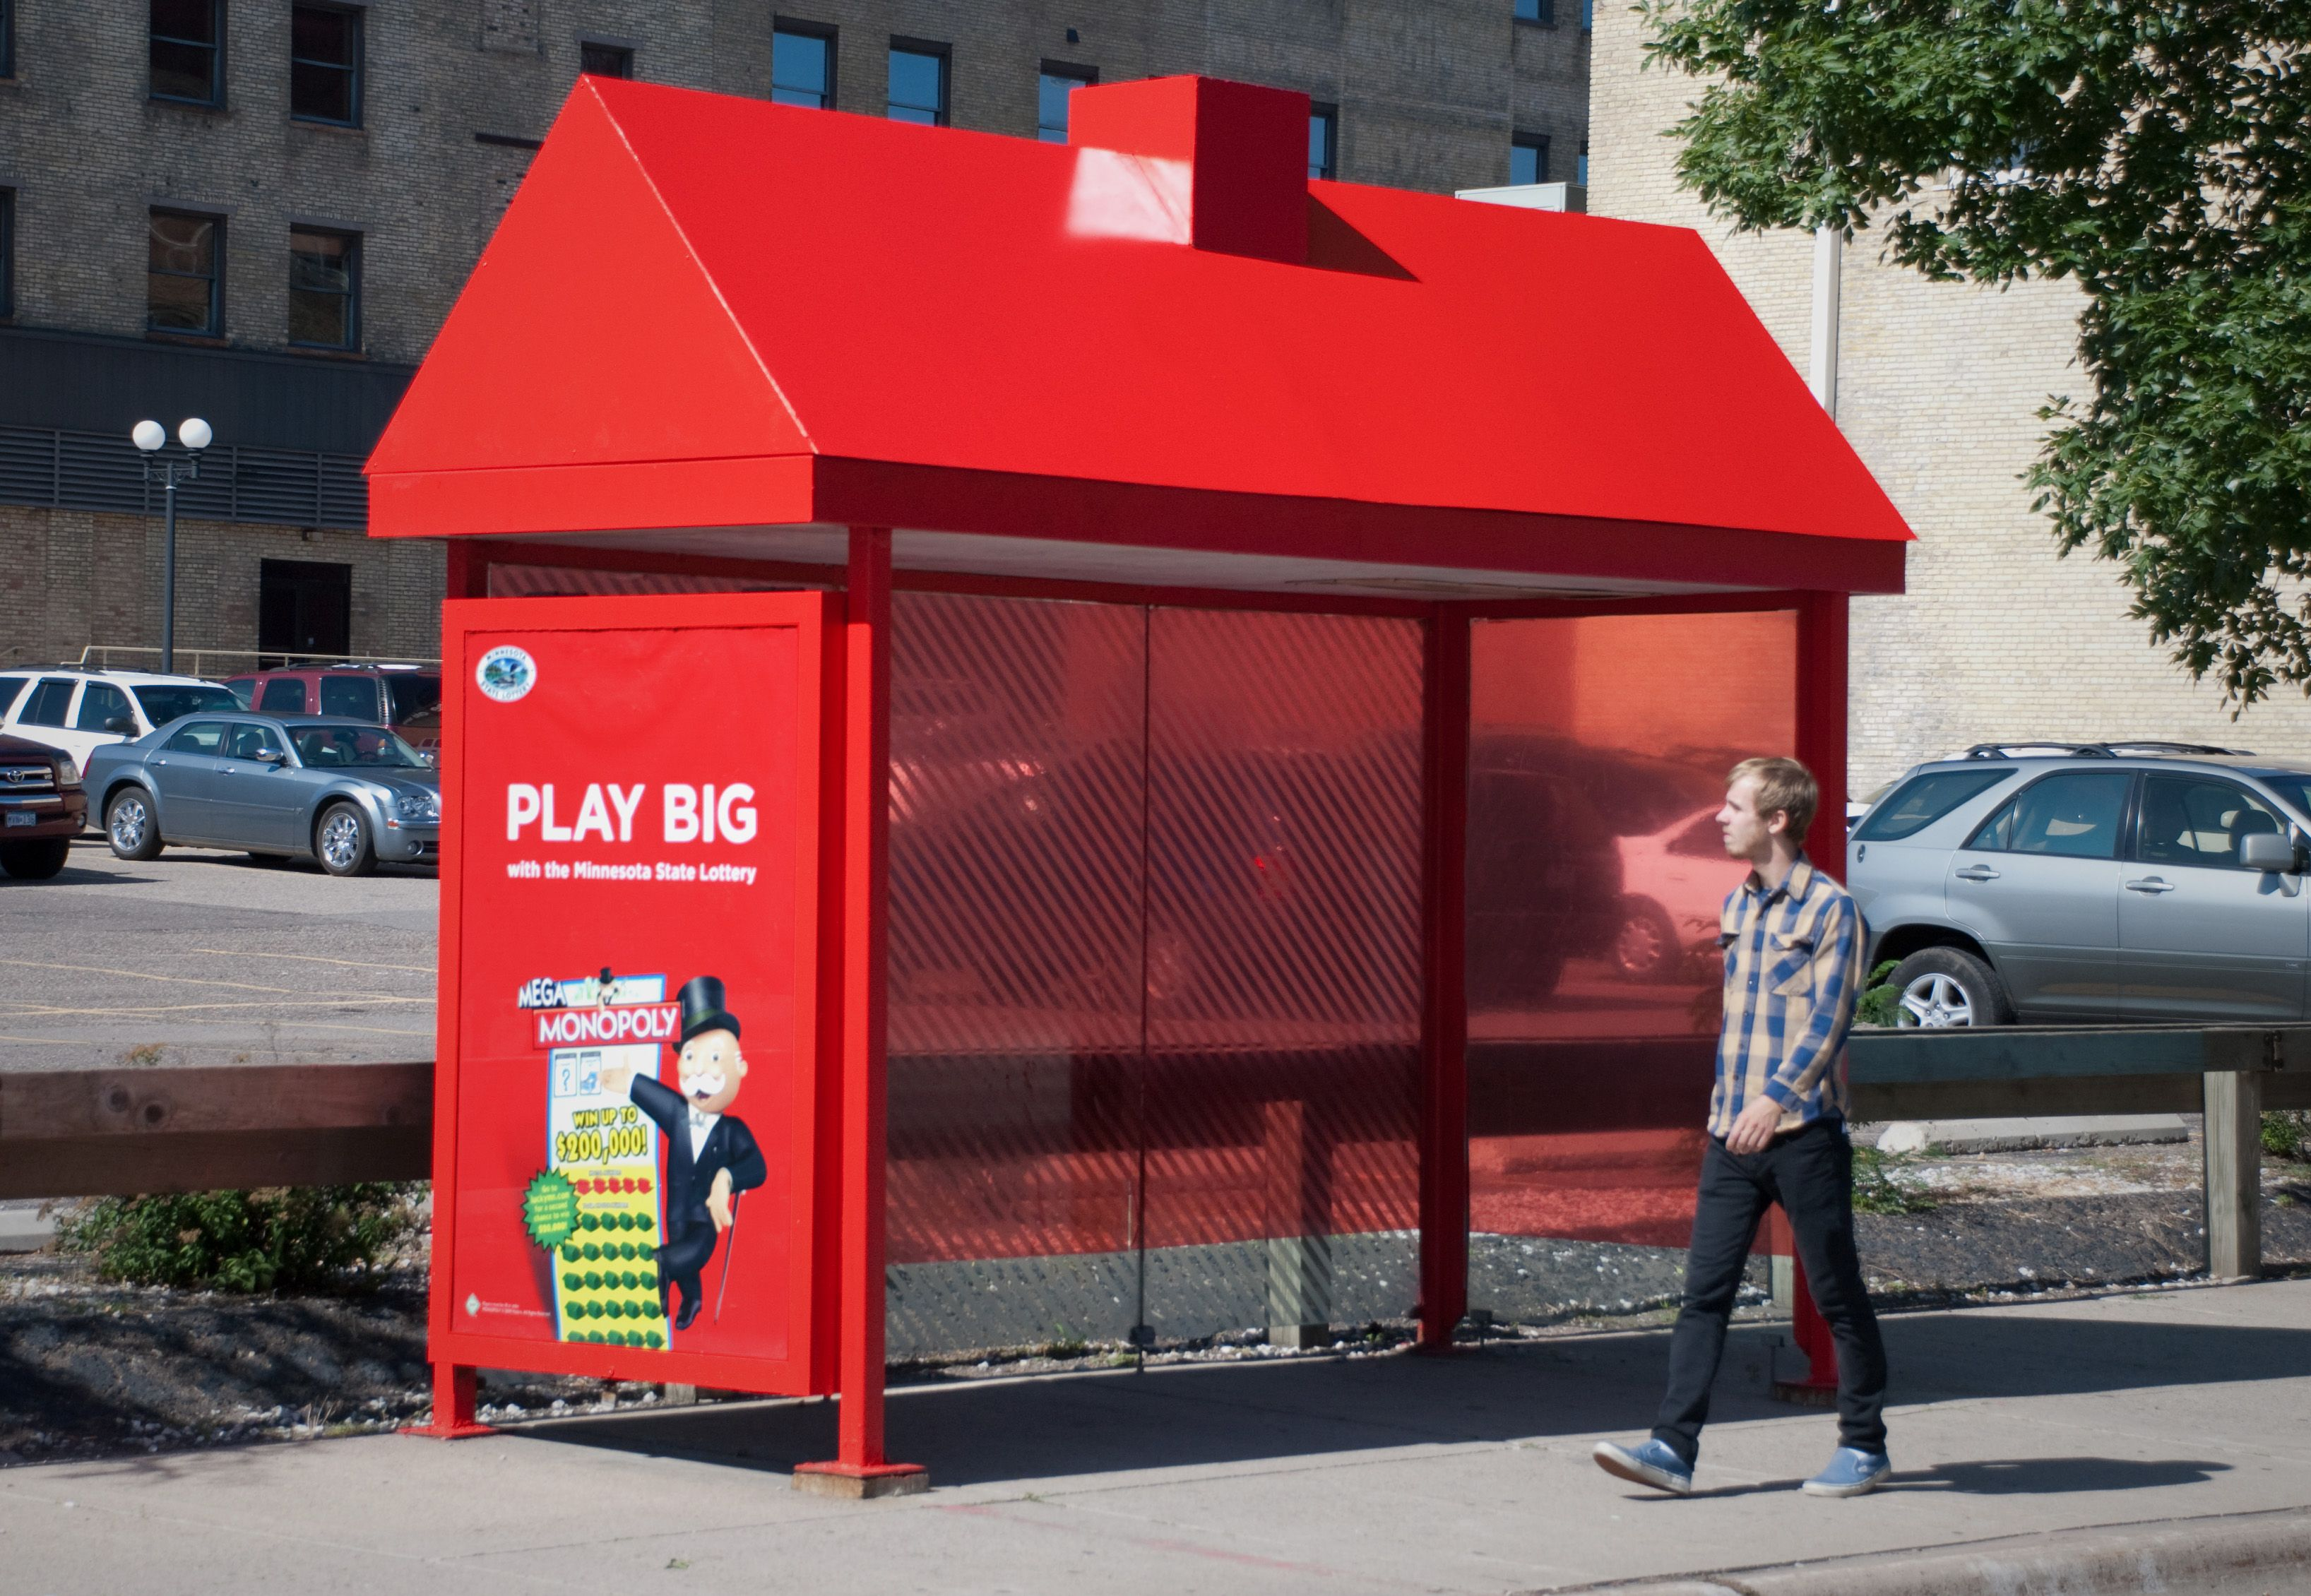 Monopoly Make Great Use Of A Bus Shelter With This Guerrilla Marketing Campaign